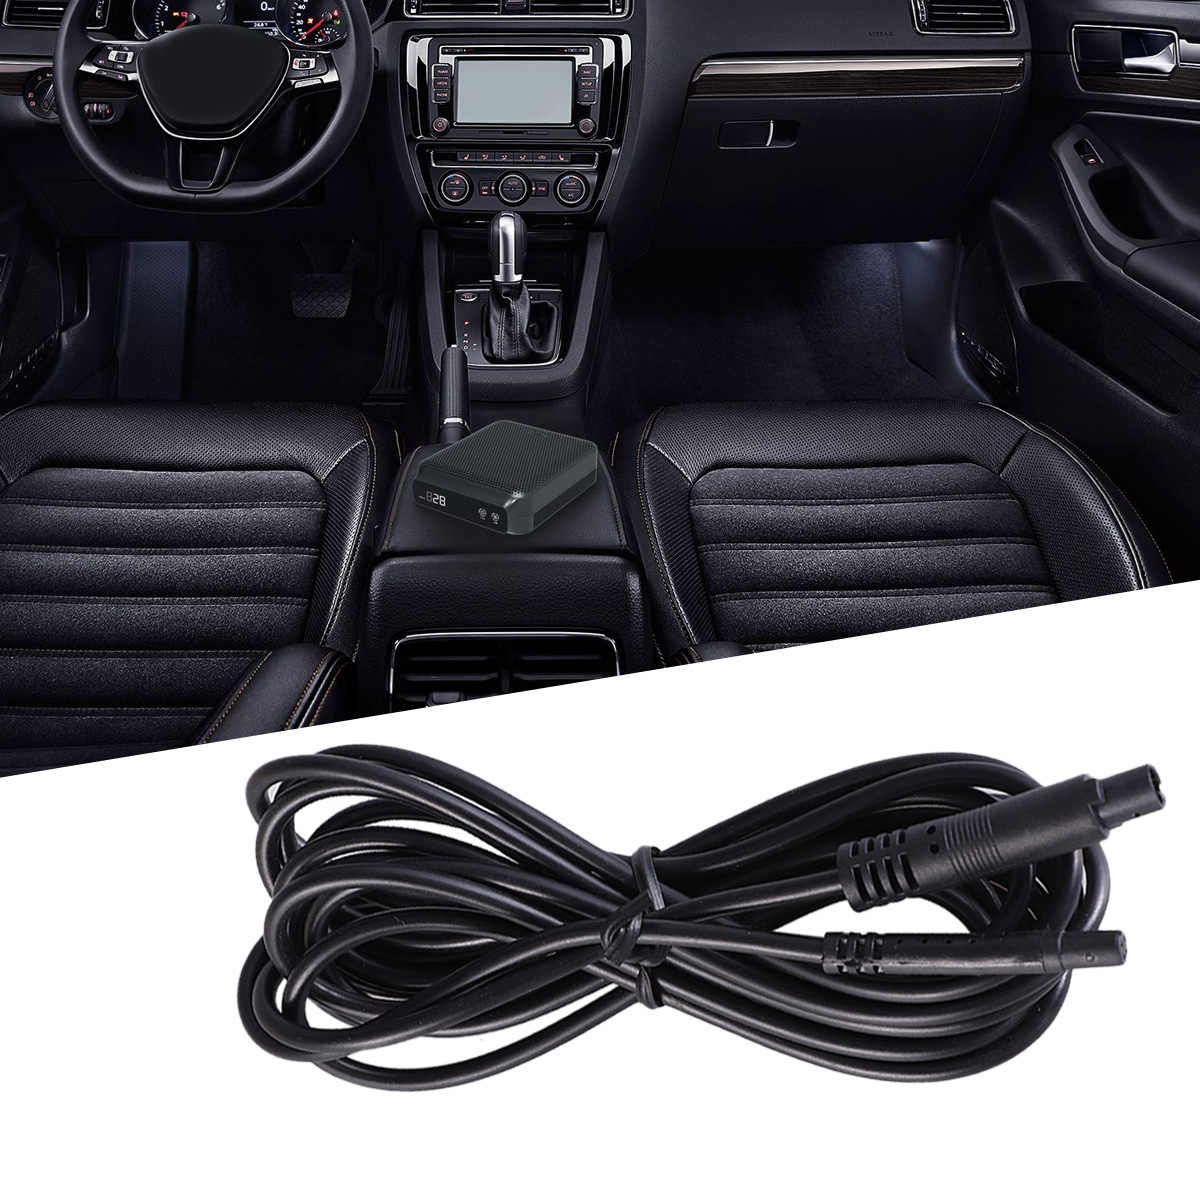 2.5m Extension Cable For Rear View Backup Dash Cam Reverse Car Recorder Camera Cord 4 Pins For 12V 24V Truck Trailer Camper Van